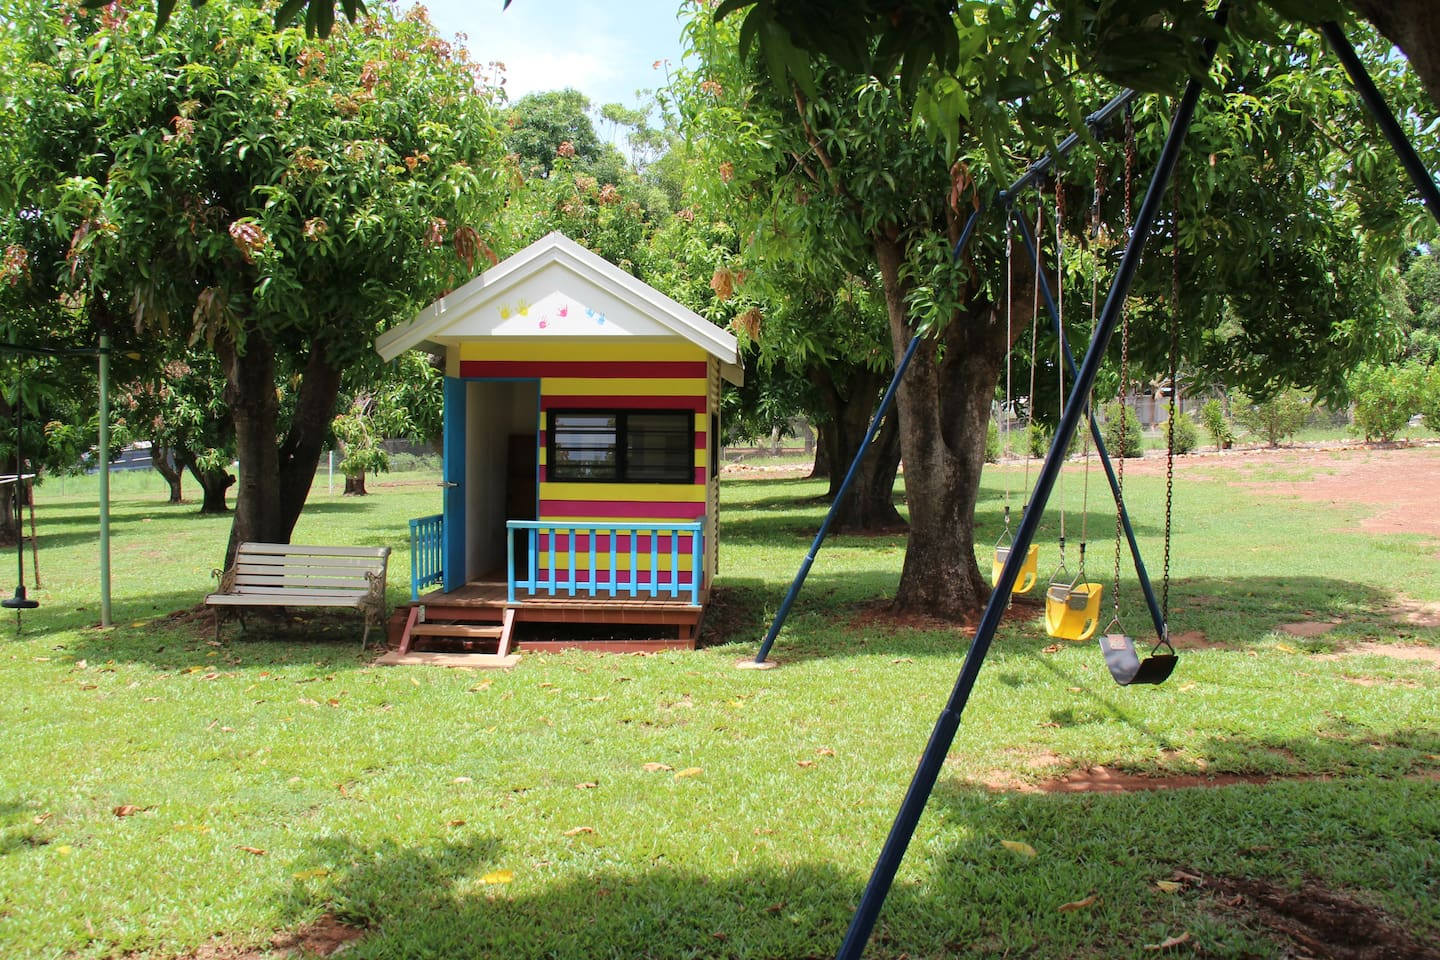 Cubby house, three swings and a full playground so that no one has to wait their turn